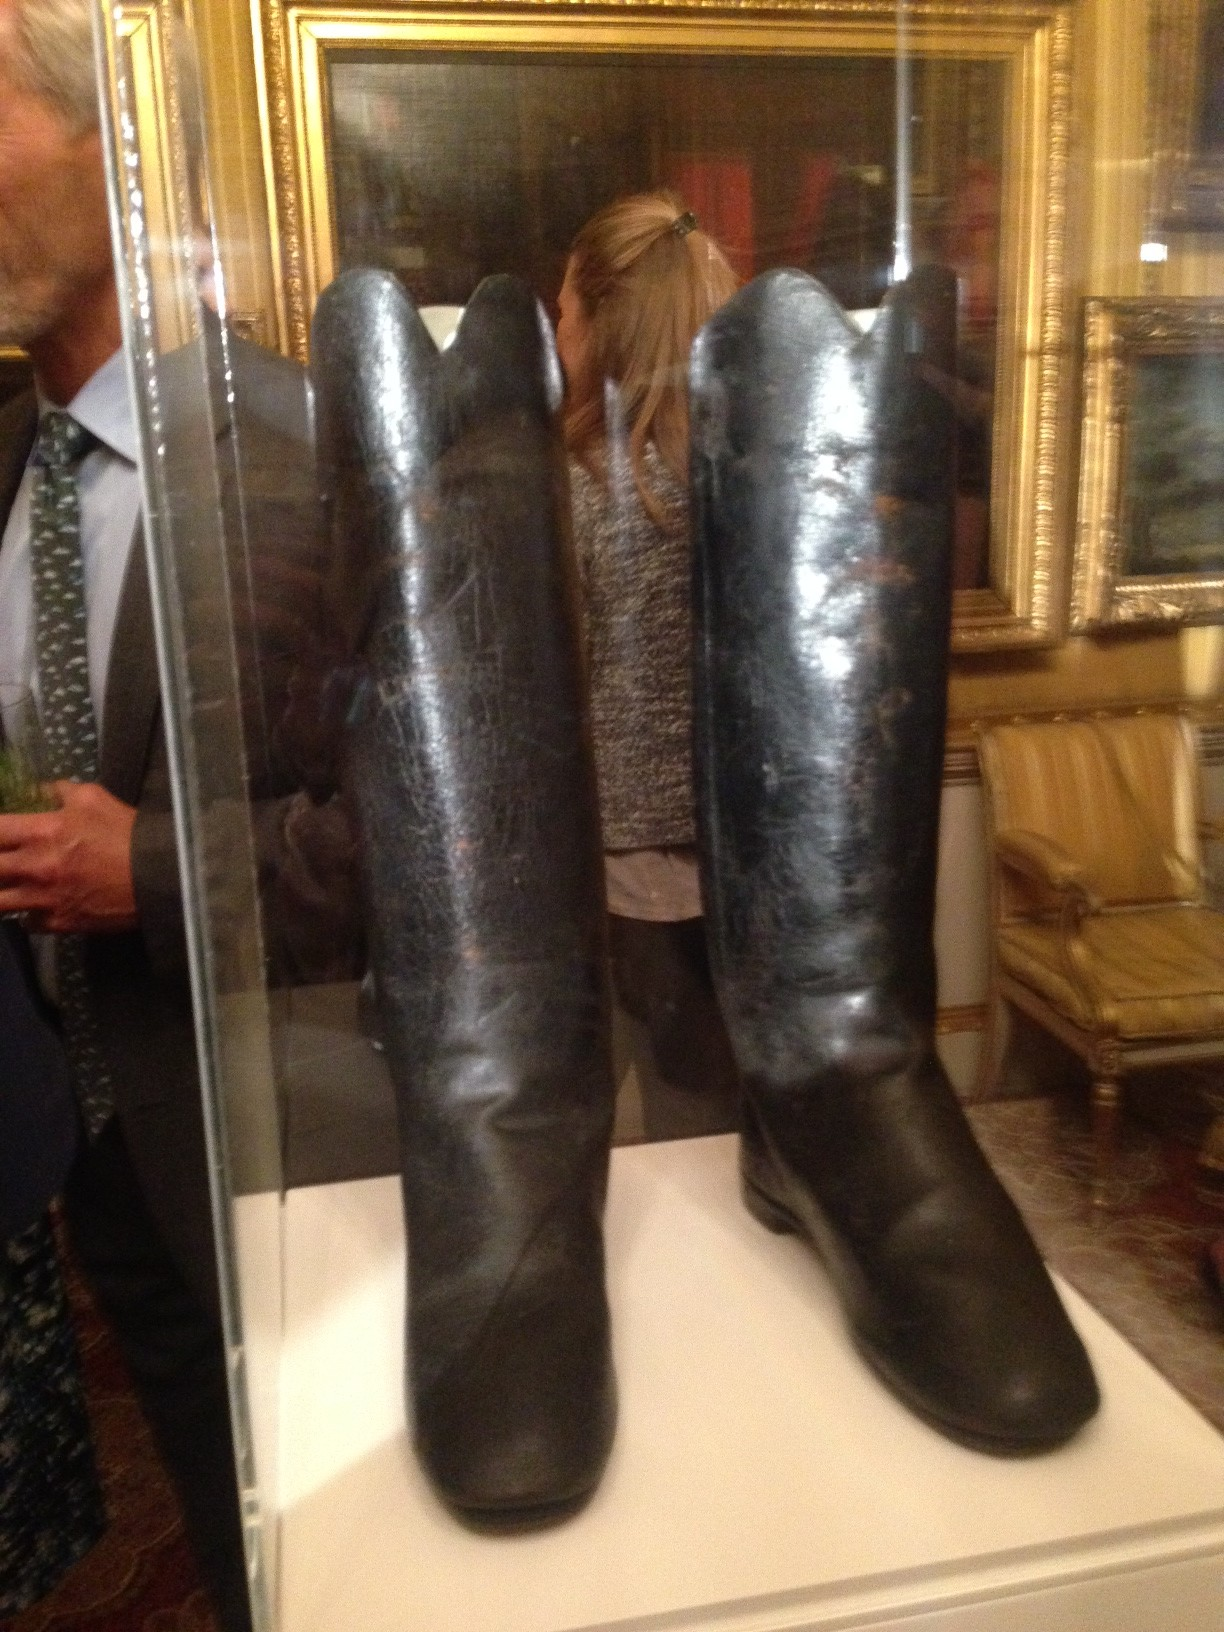 duke of wellington boot - photo #19